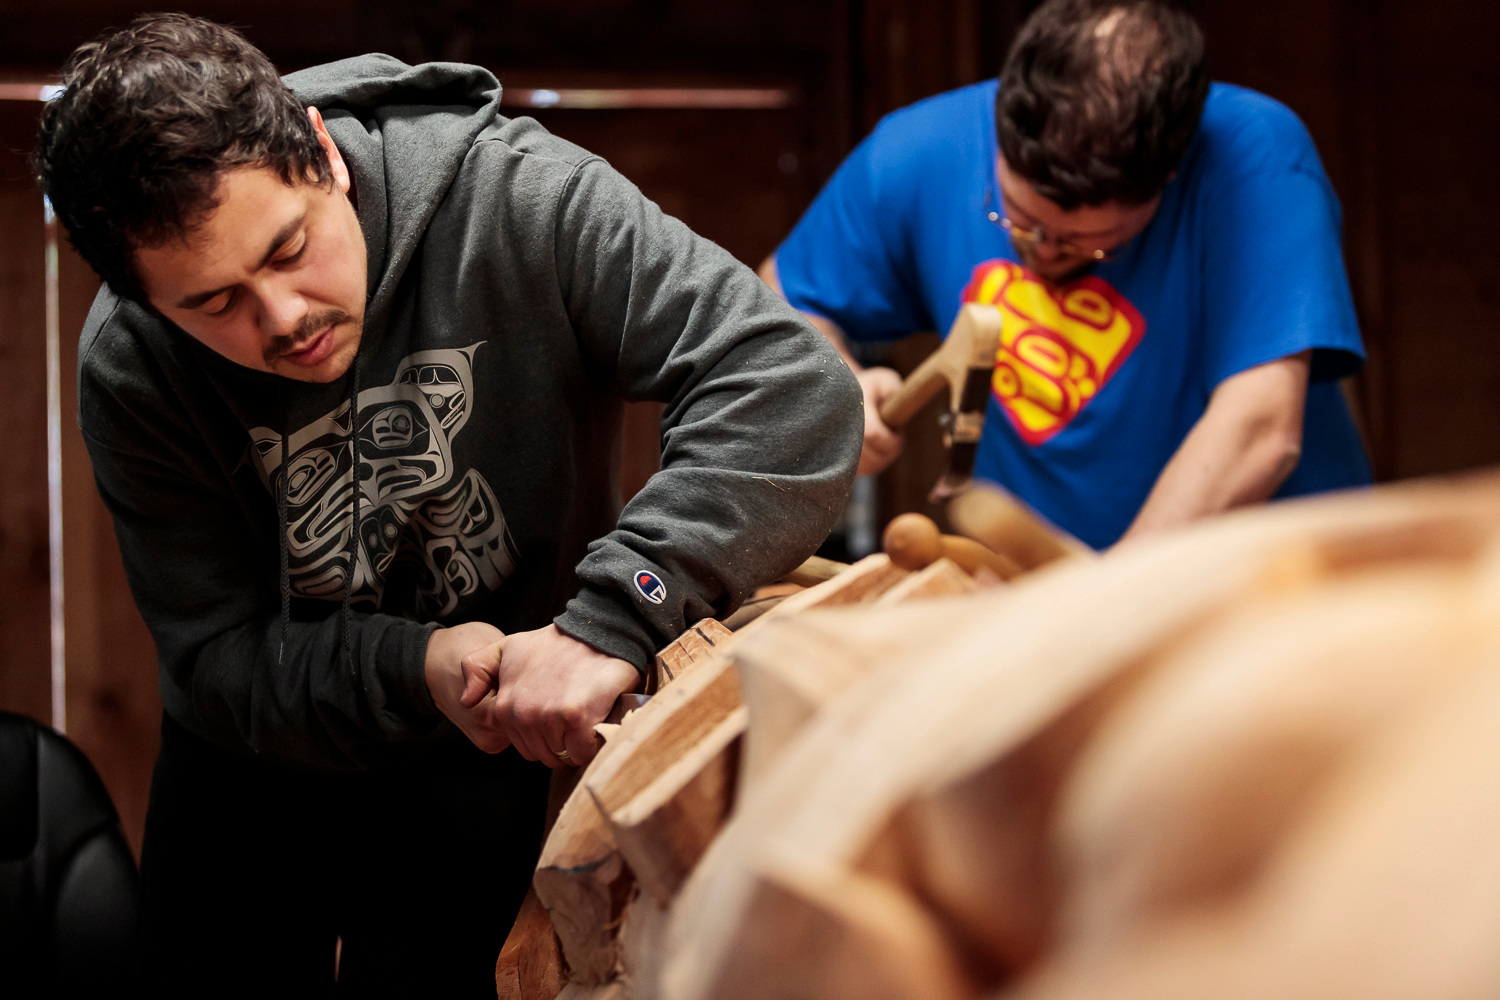 David Robert Boxley (back) and Clifton Guthrie (front) are Tsimshian Artist and Carvers living in Metlakatla, Alaska. When they were born 150 people spoke their native language. Now only, 3.